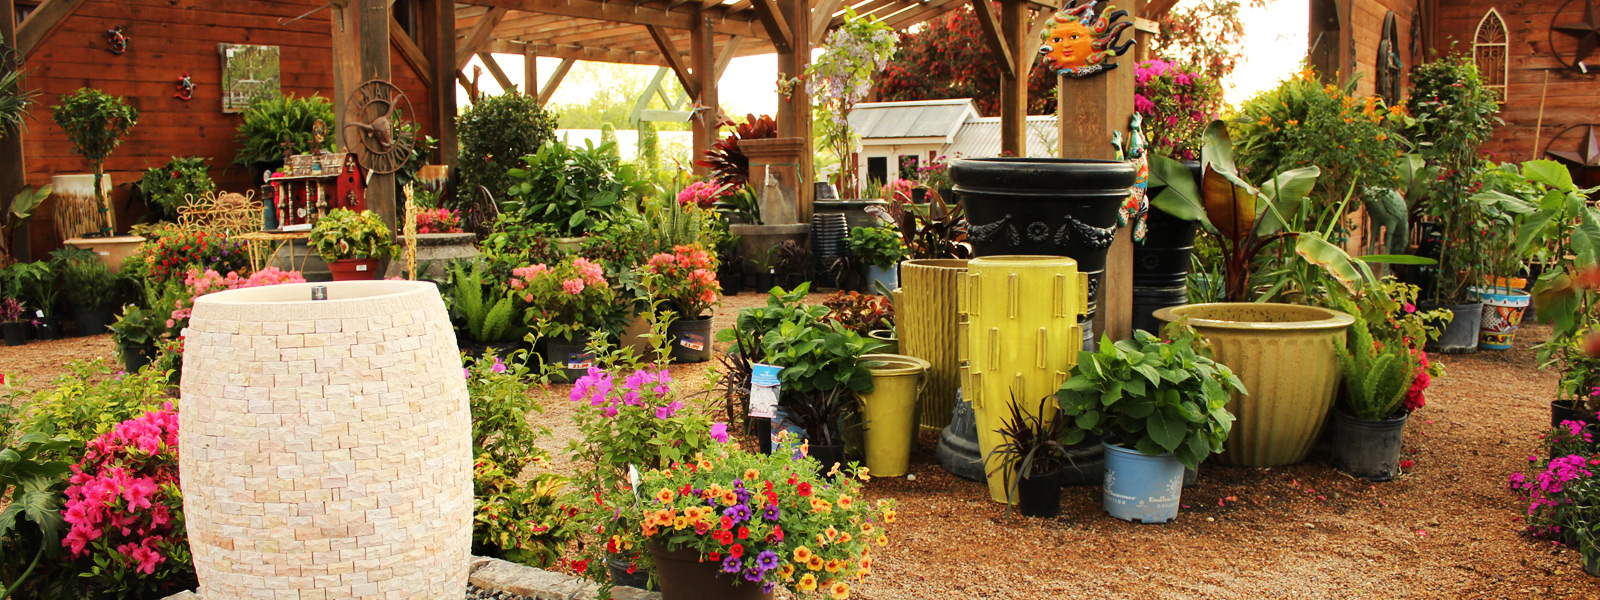 Welcome to Shades of Texas - Shades of Texas Nursery & Landscaping ...